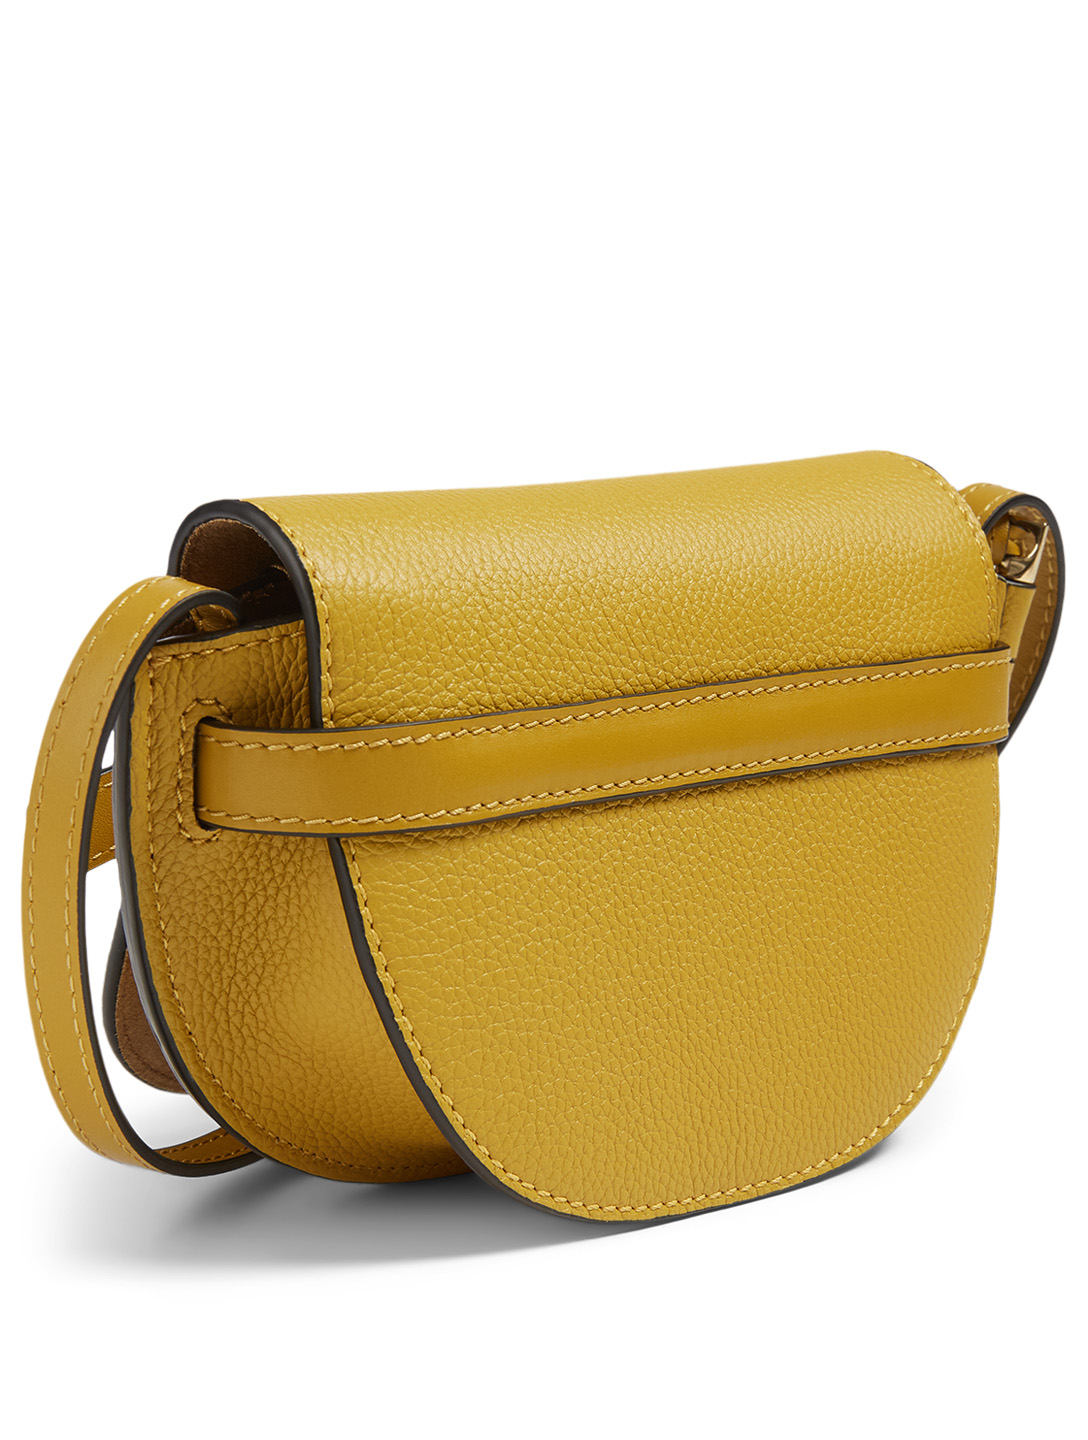 LOEWE Mini Gate Leather Crossbody Bag Women's Yellow